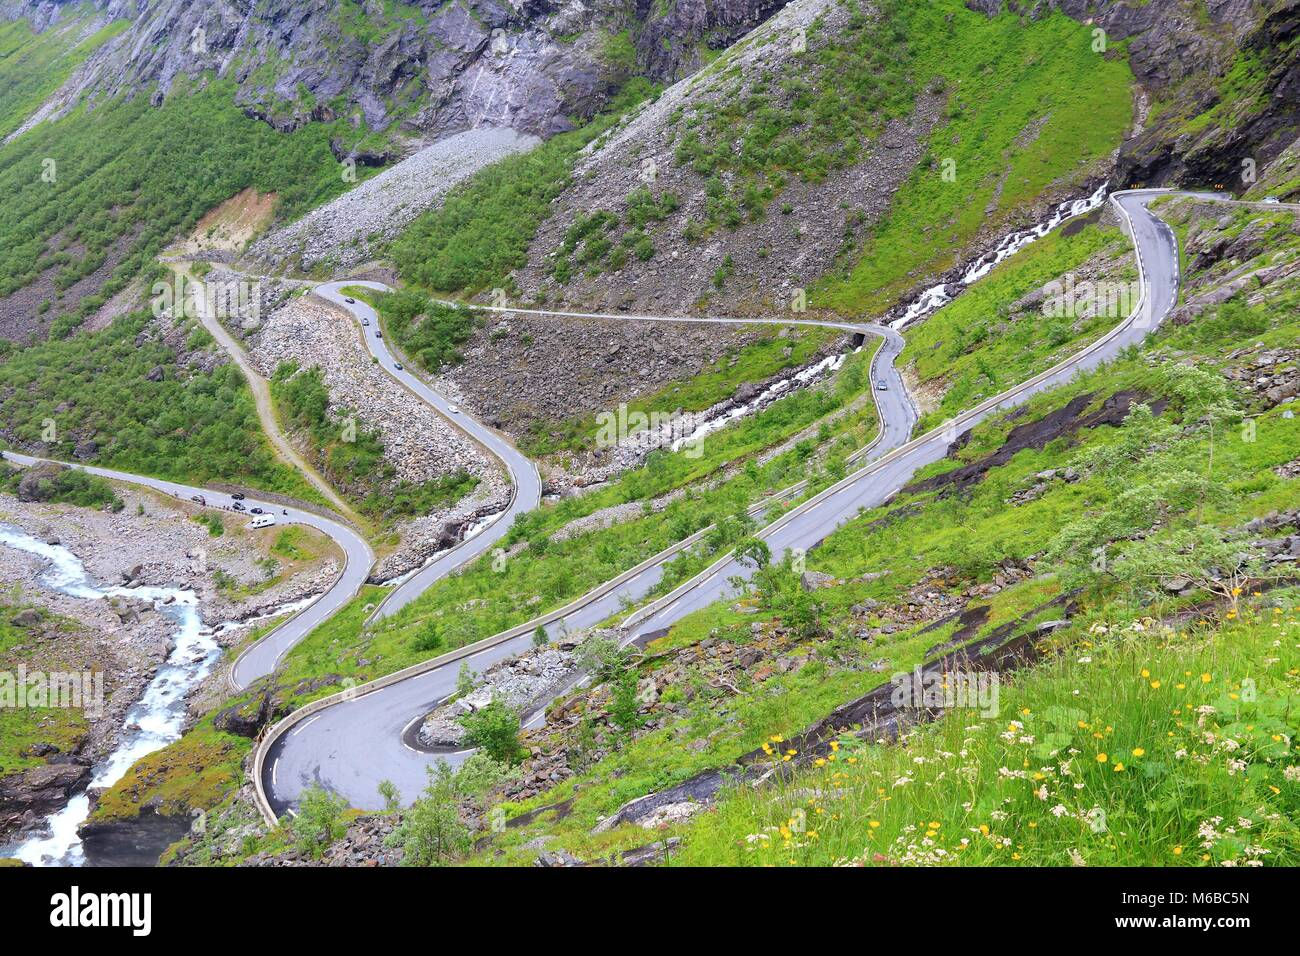 Norway Troll Road - mountain route of Trollstigen. More og Romsdal region. - Stock Image